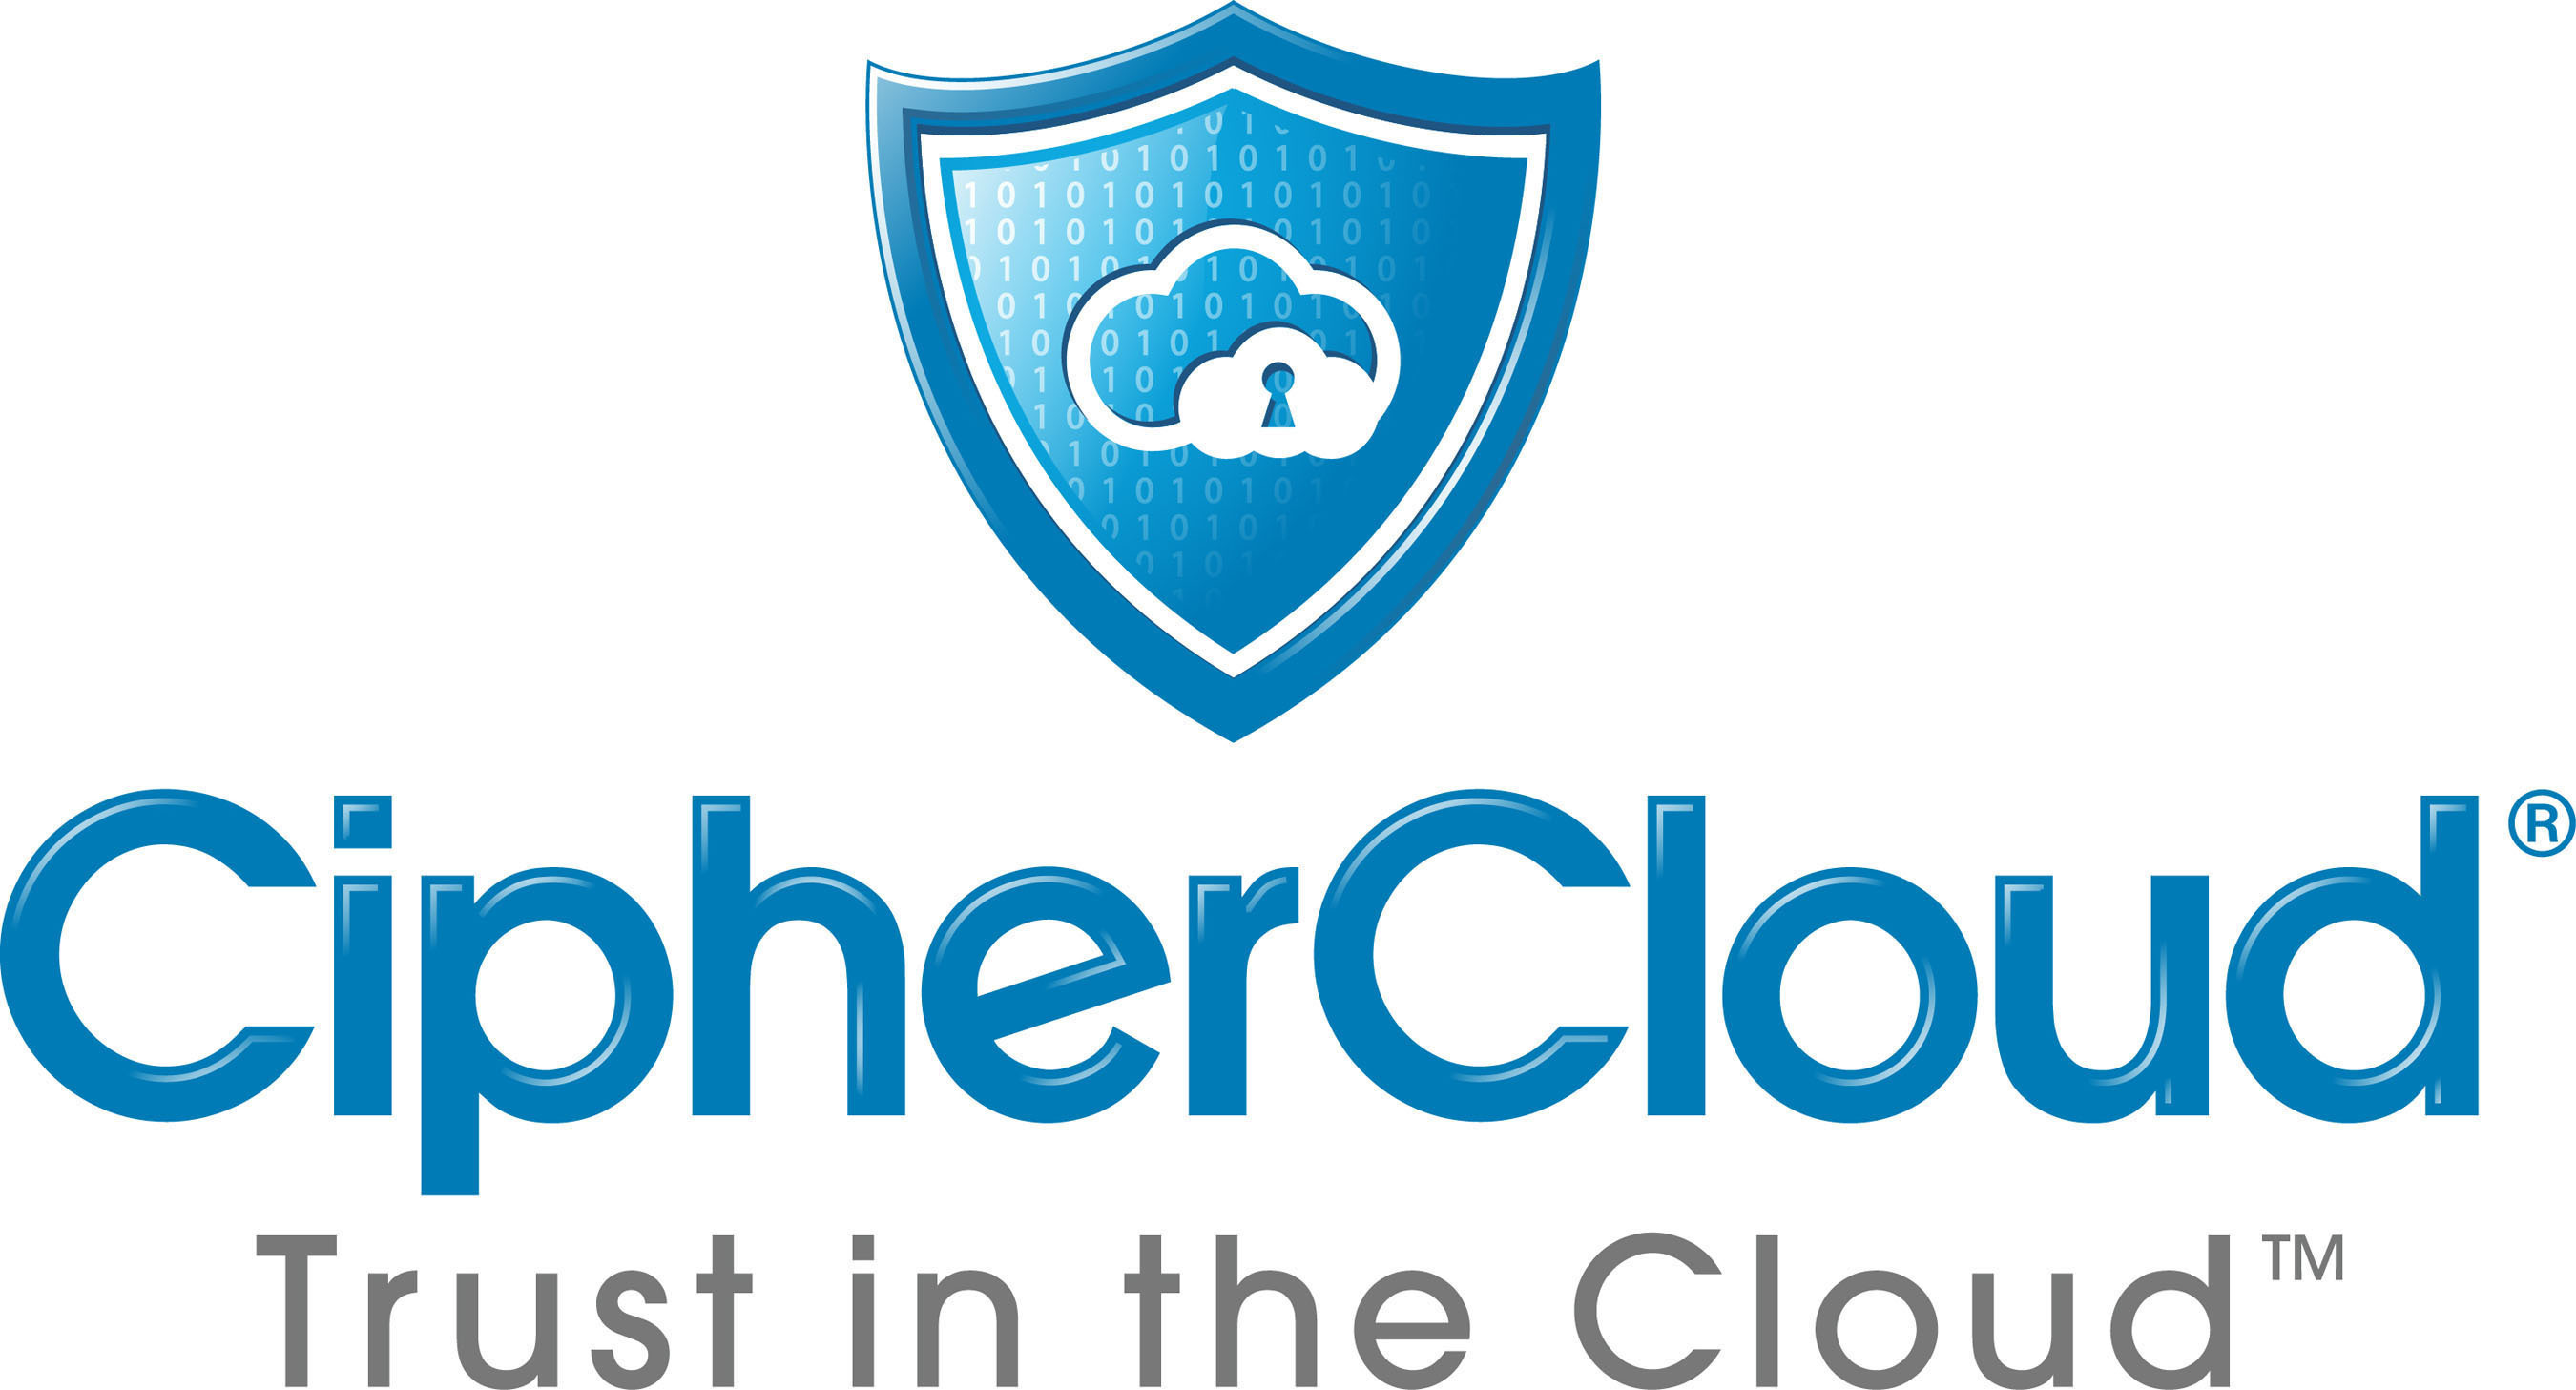 CipherCloud, the leader in cloud information protection, enables organizations to securely adopt cloud applications by overcoming data privacy, residency, security, and regulatory compliance risks. CipherCloud's open platform provides comprehensive security controls including encryption, tokenization, cloud data loss prevention, cloud malware detection, and activity monitoring. The CipherCloud product portfolio protects popular cloud applications out-of-the-box such as Salesforce, Force.com, Chatter, Box, Google Gmail, Microsoft Office 365, and Amazon Web Services. CipherCloud's ground breaking technology protects sensitive information in real time, before it is sent to the cloud, while preserving application usability and functionality for its more than 1.2 million business users